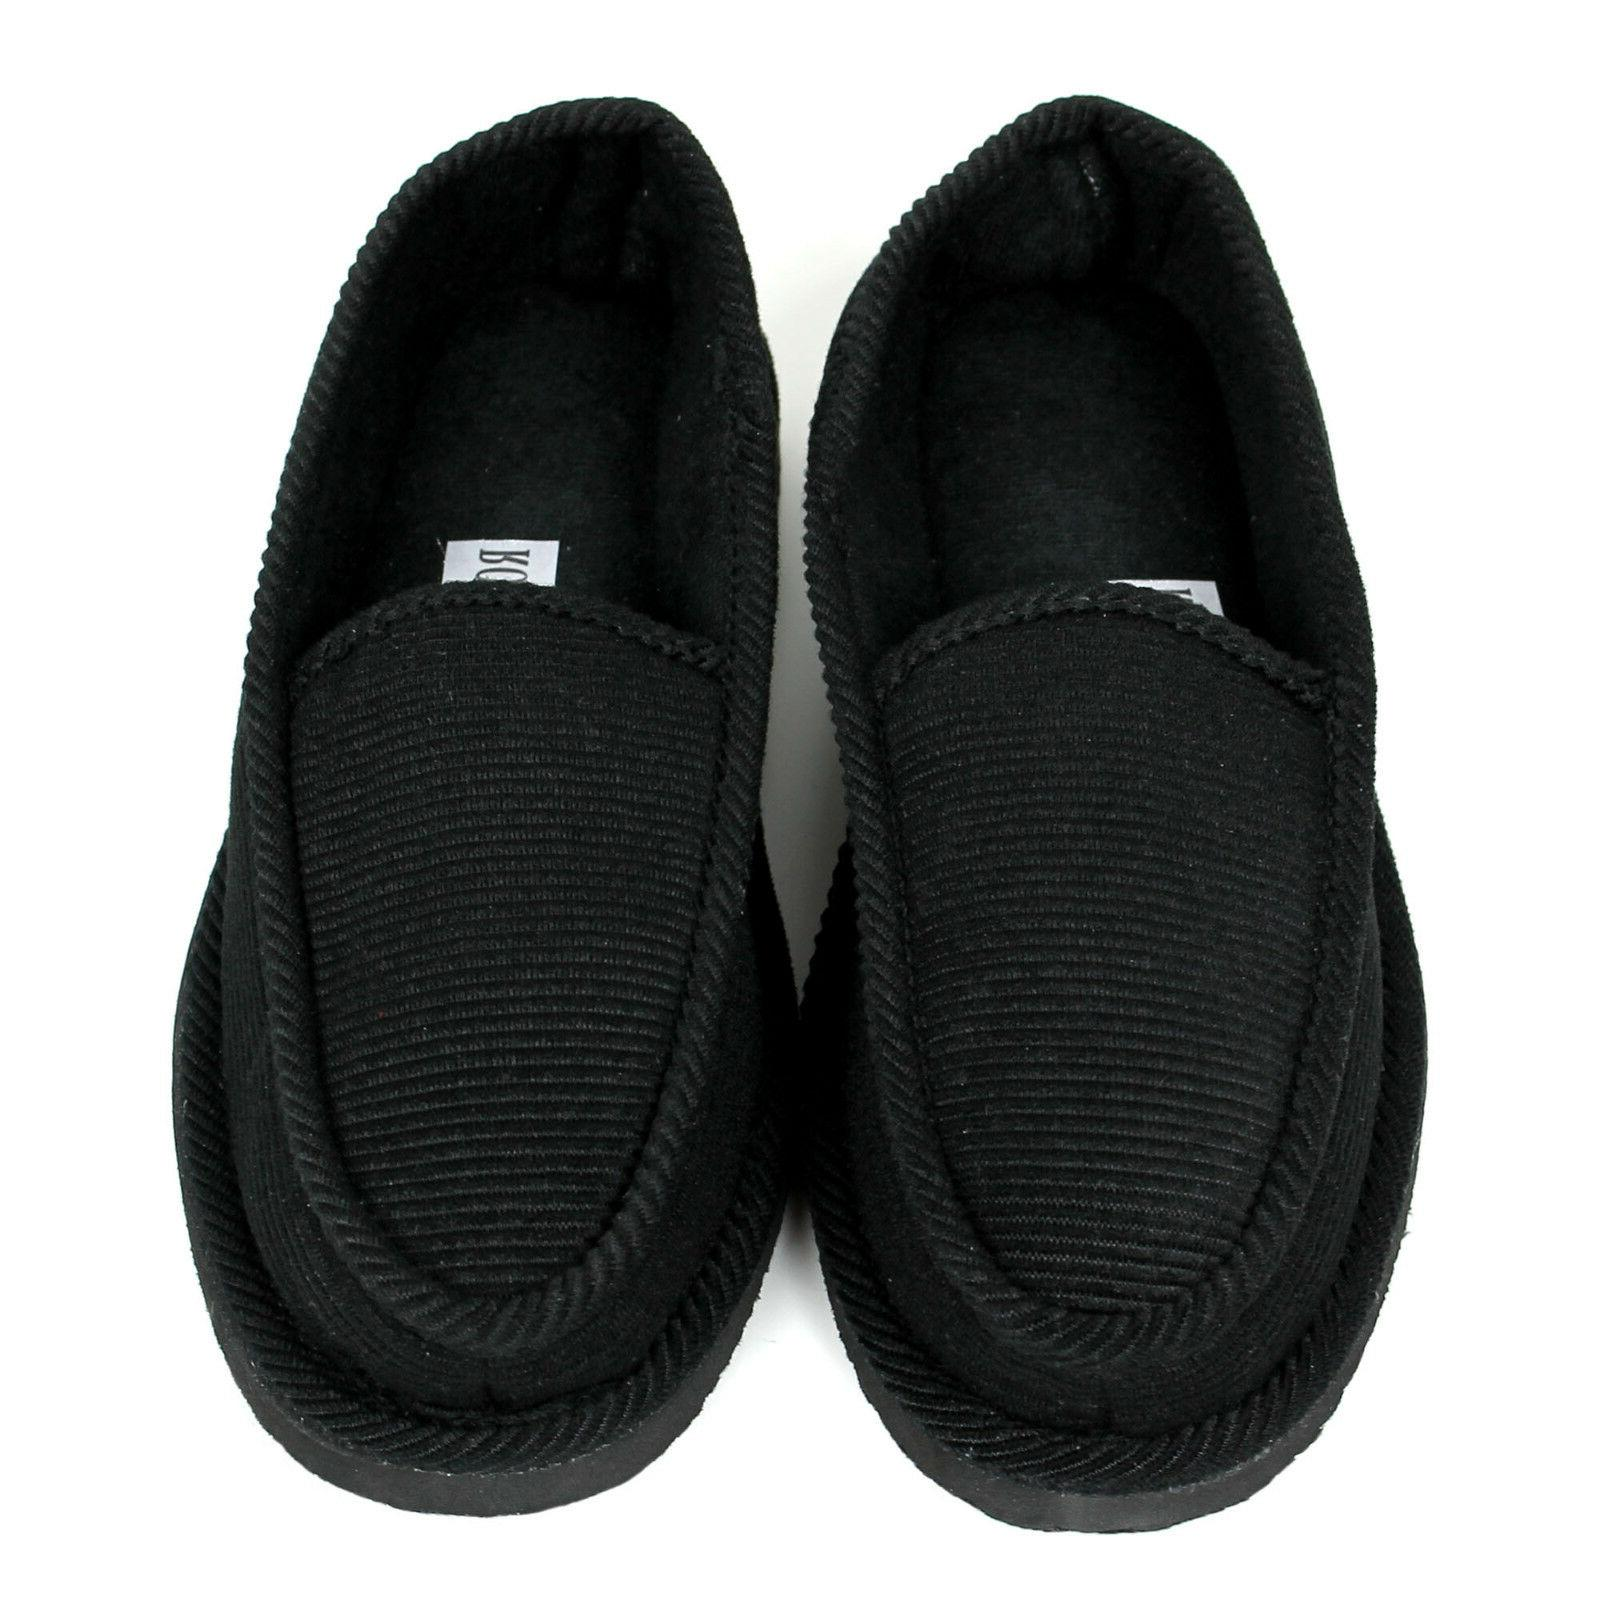 New Slippers Corduroy Shoes Male Size